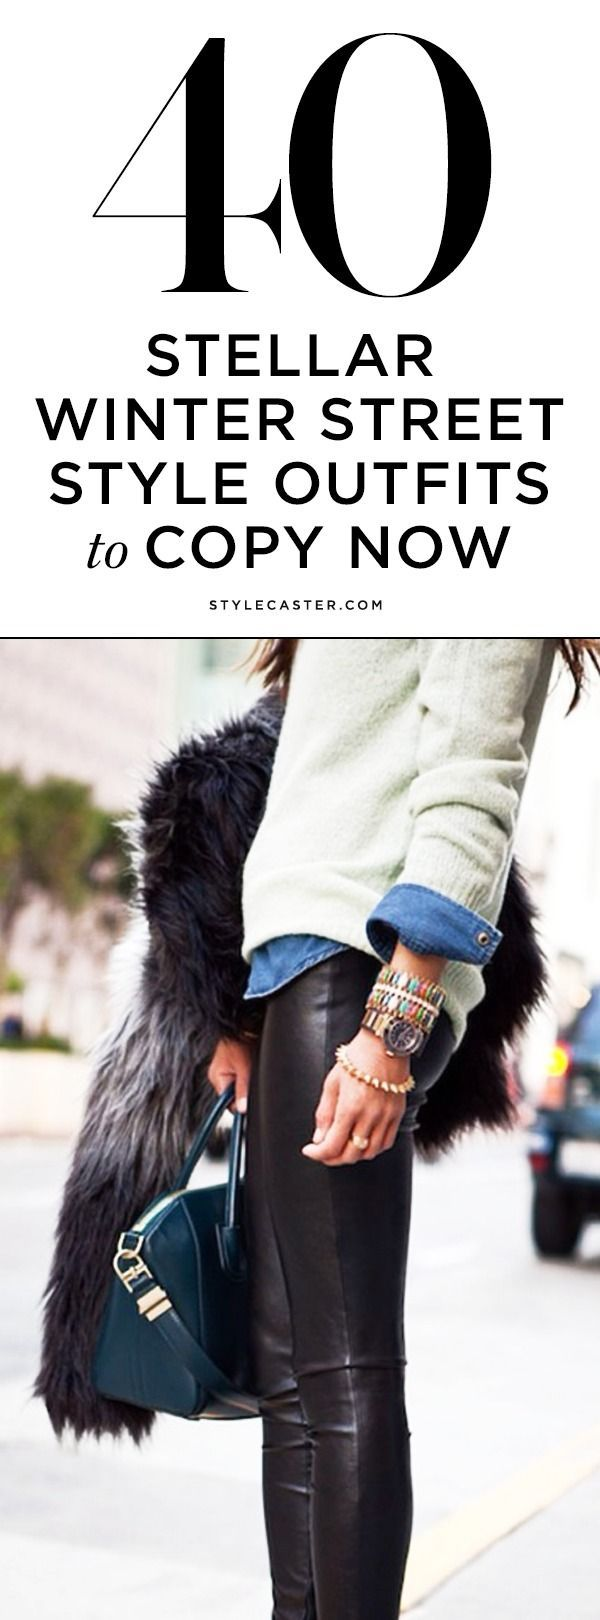 40 Amazing Street Style Outfits to Copy This Winter http://stylecaster.com/winter-chic-40-stellar-street-style-outfits-copy/